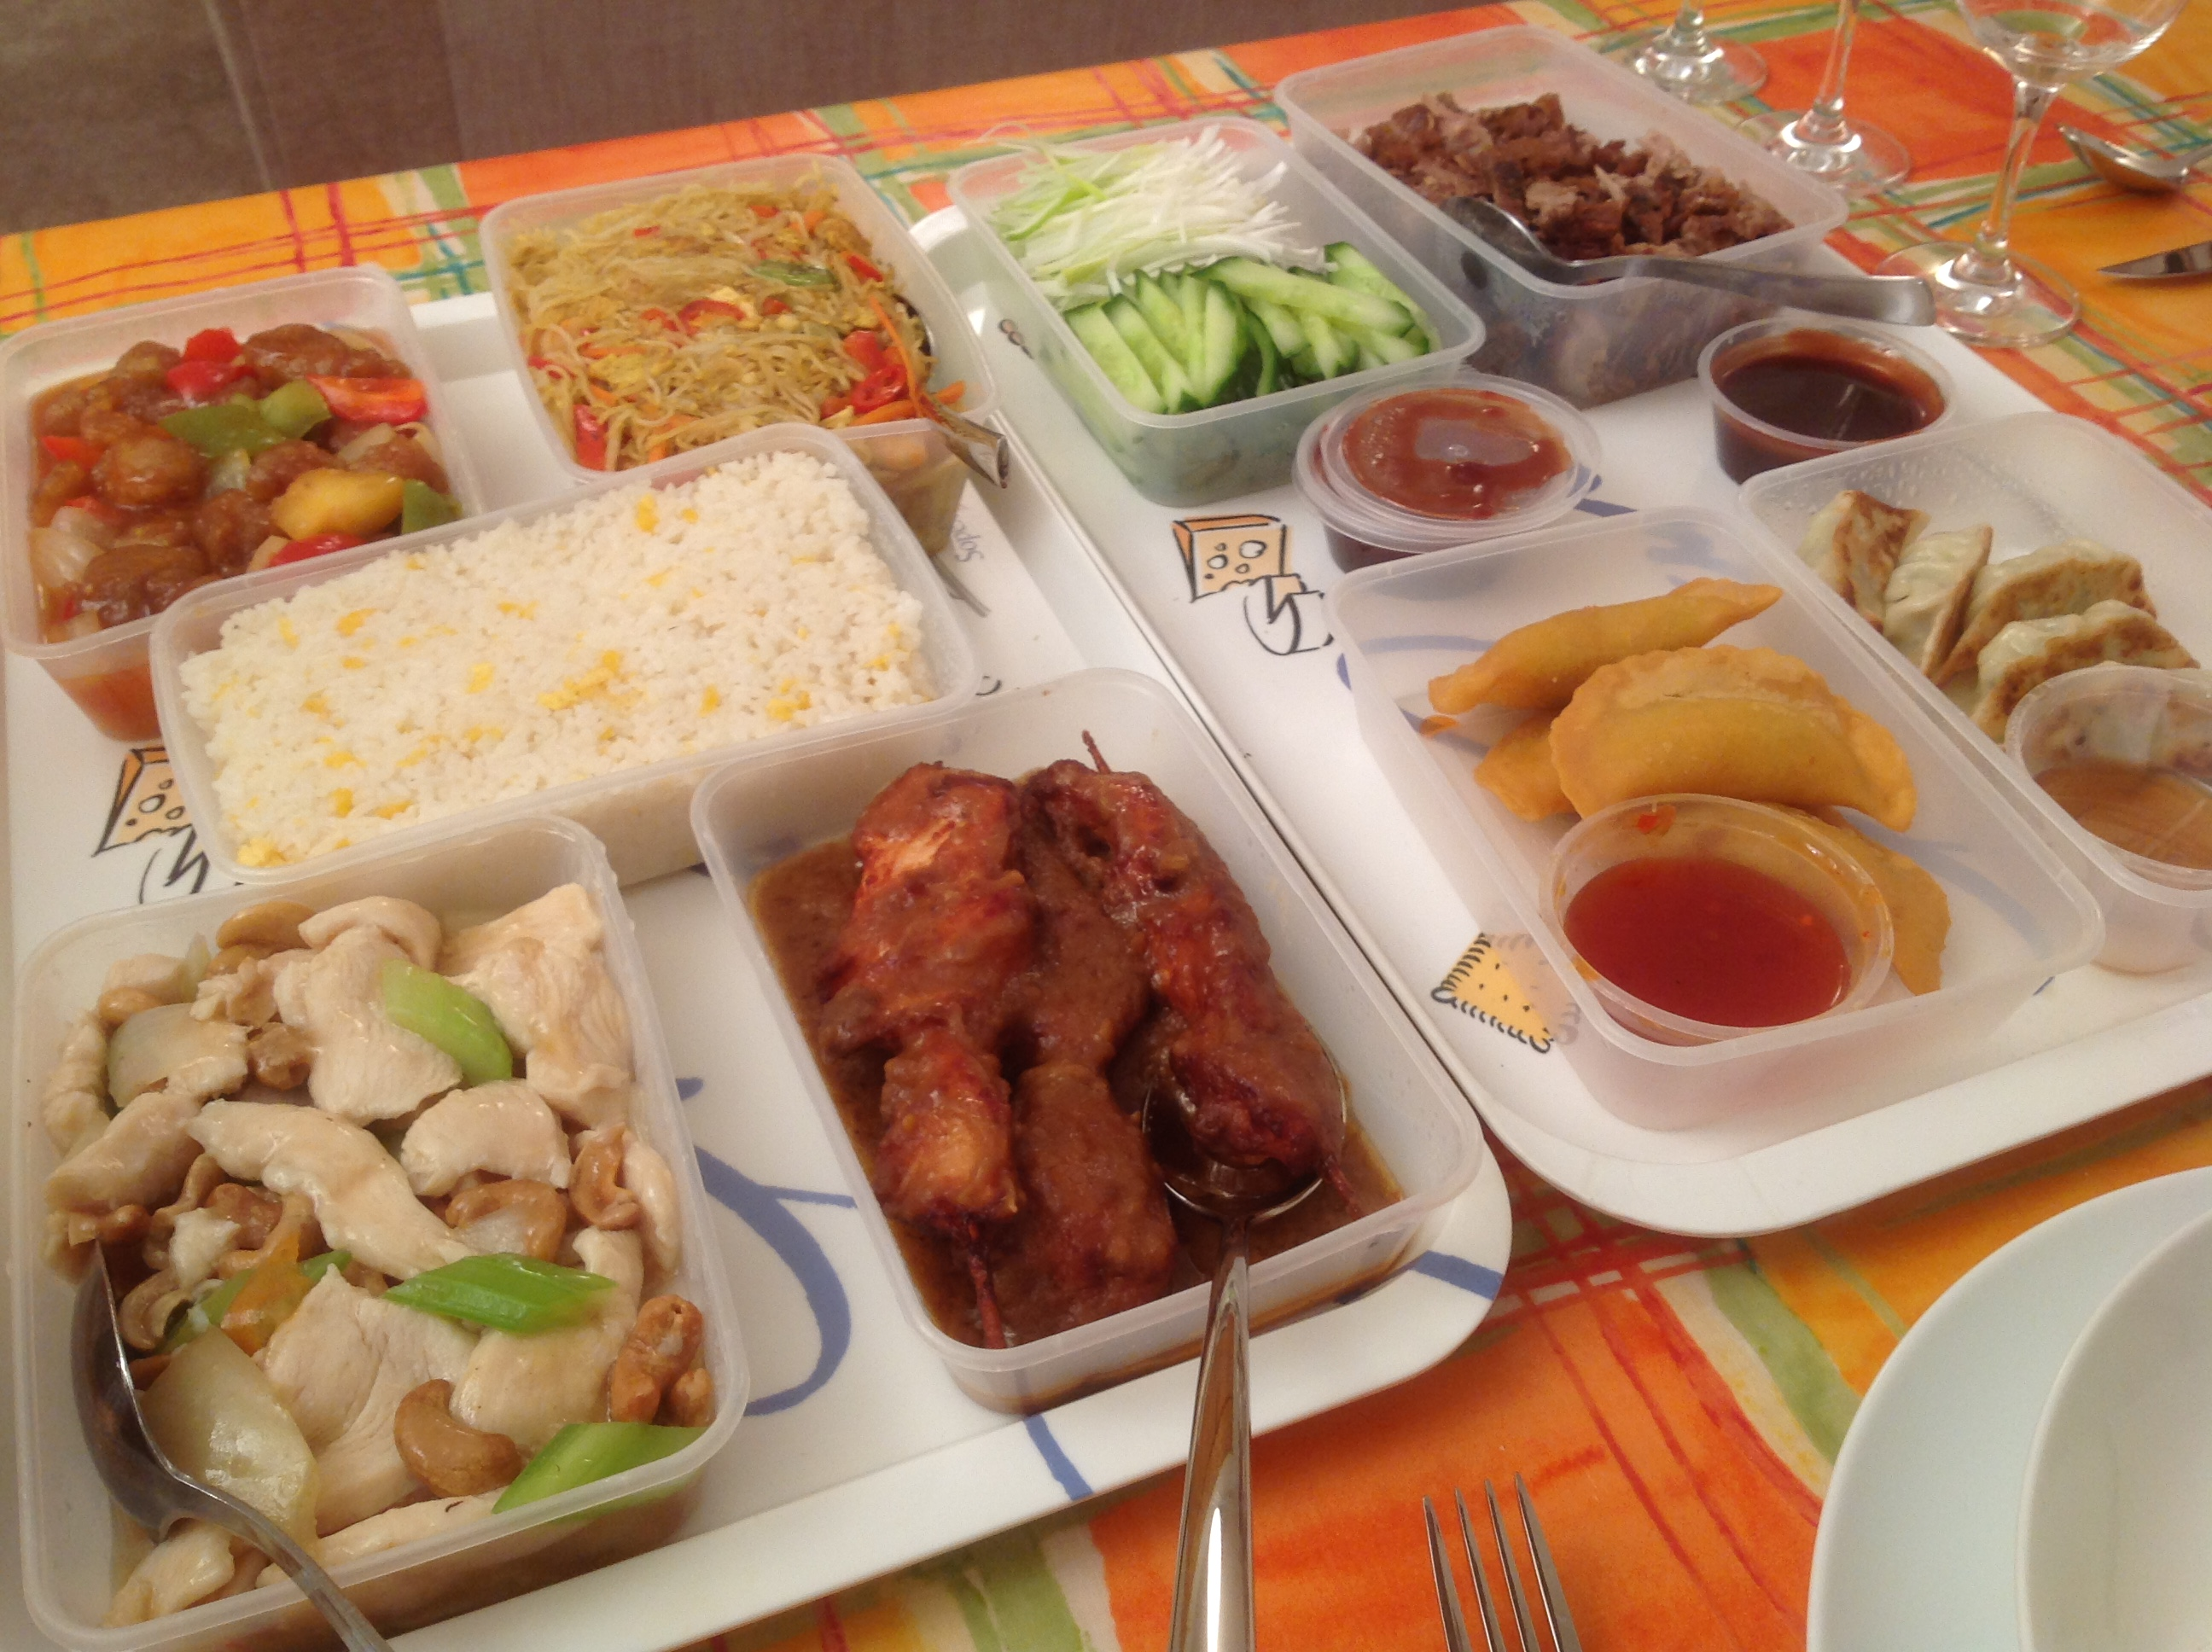 My Chinese New Year meal, not the most elegant in its little cartons